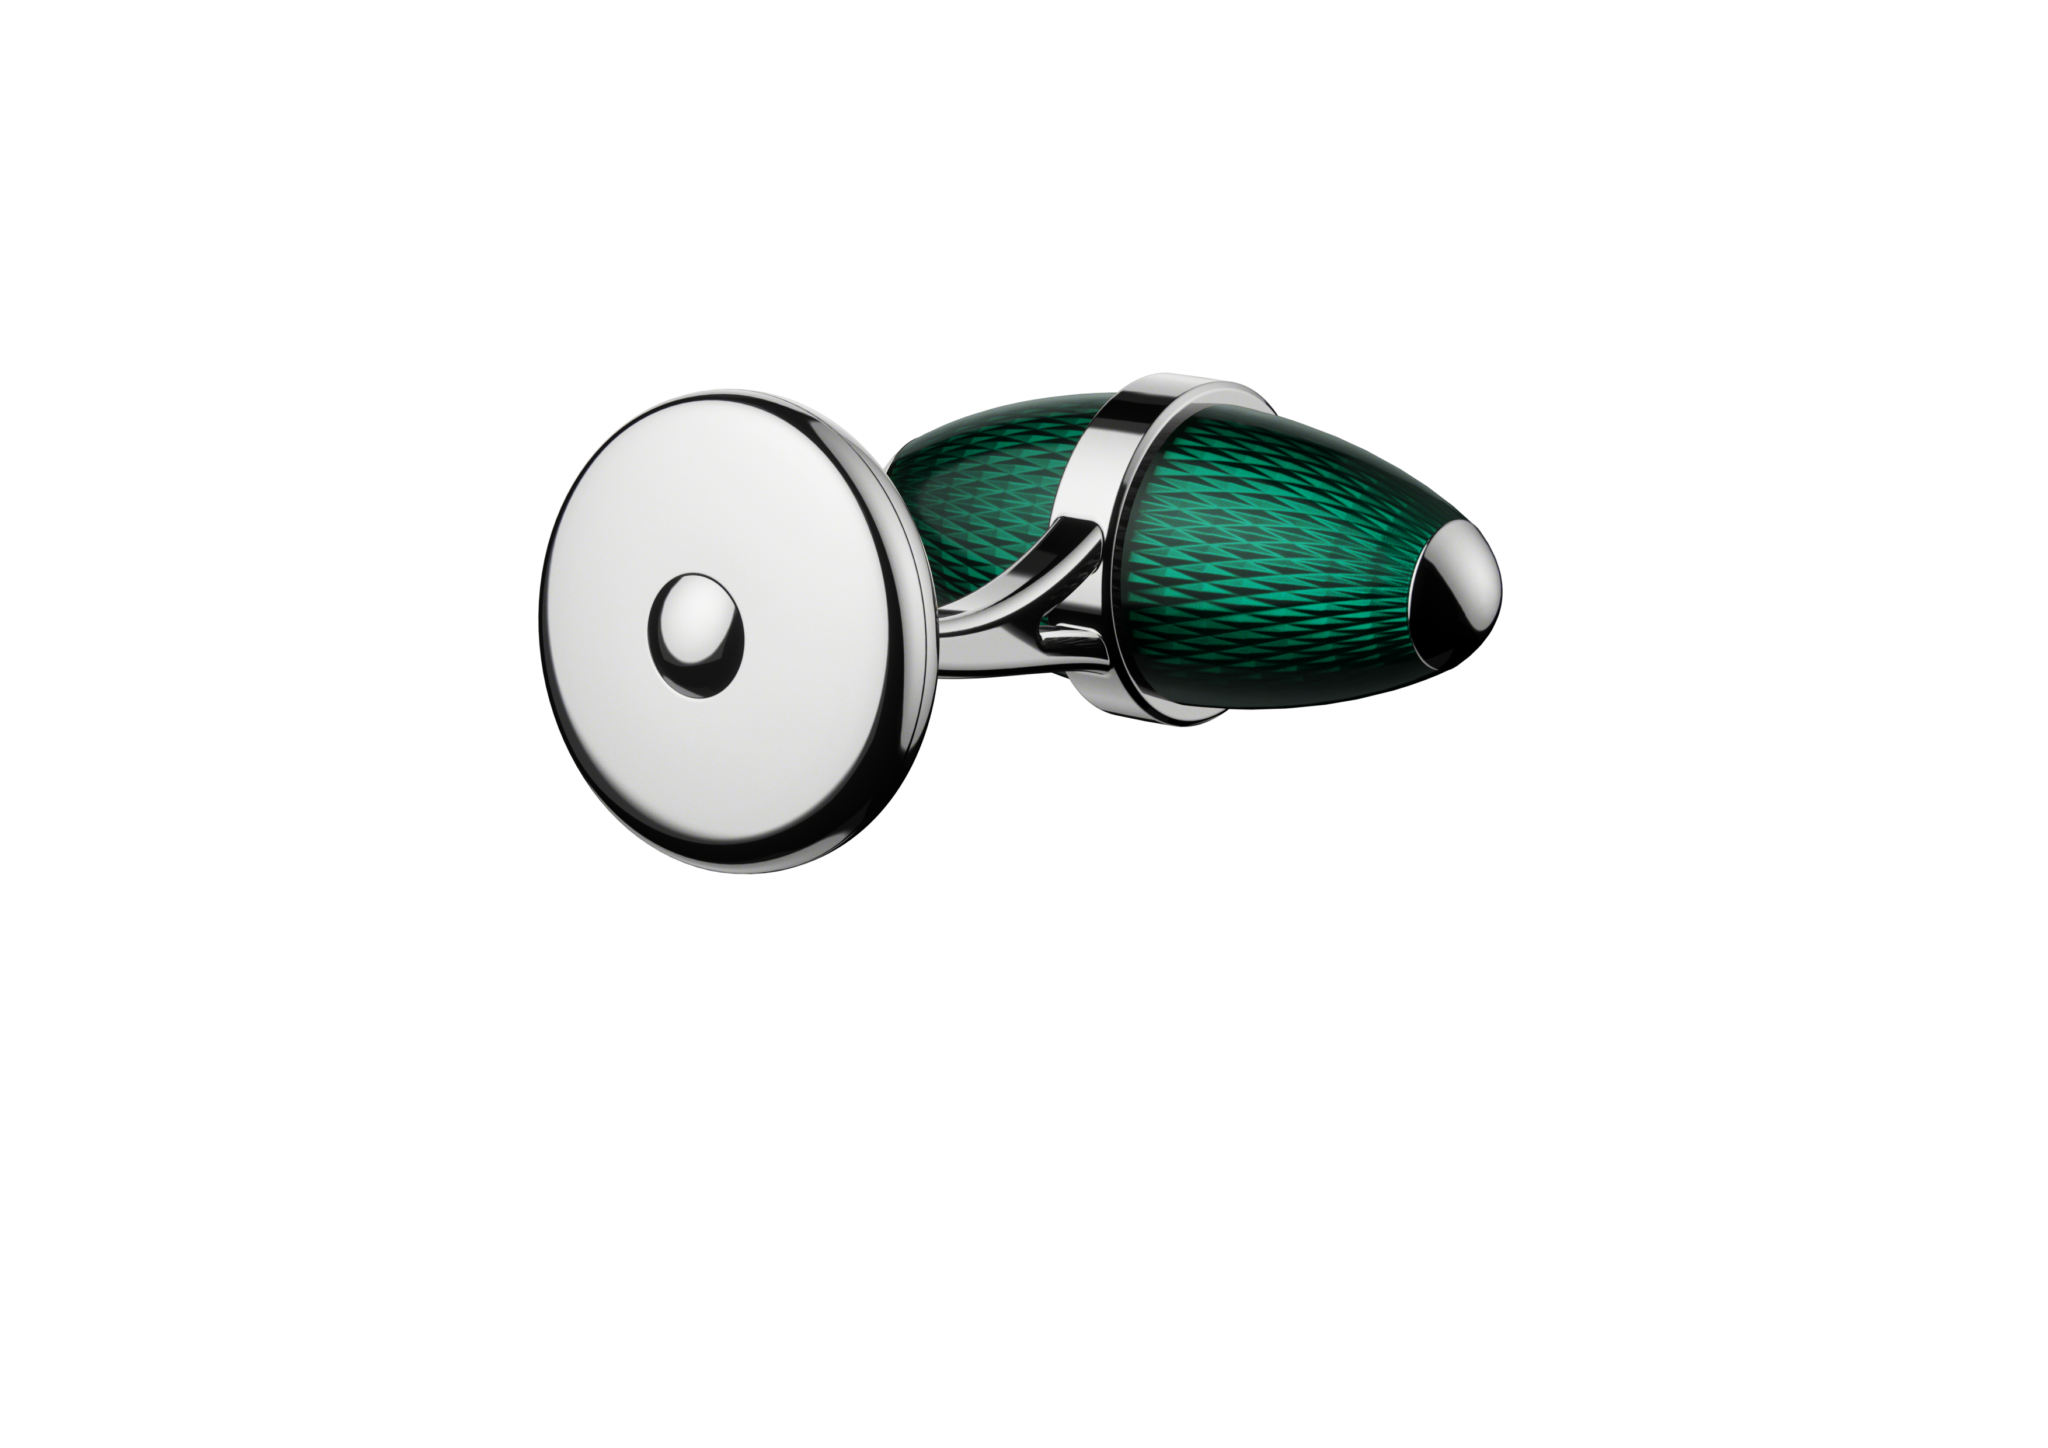 kerbedanz_Cufflinks_Ogive_TURQUOISE_DOS_Stainless-steel